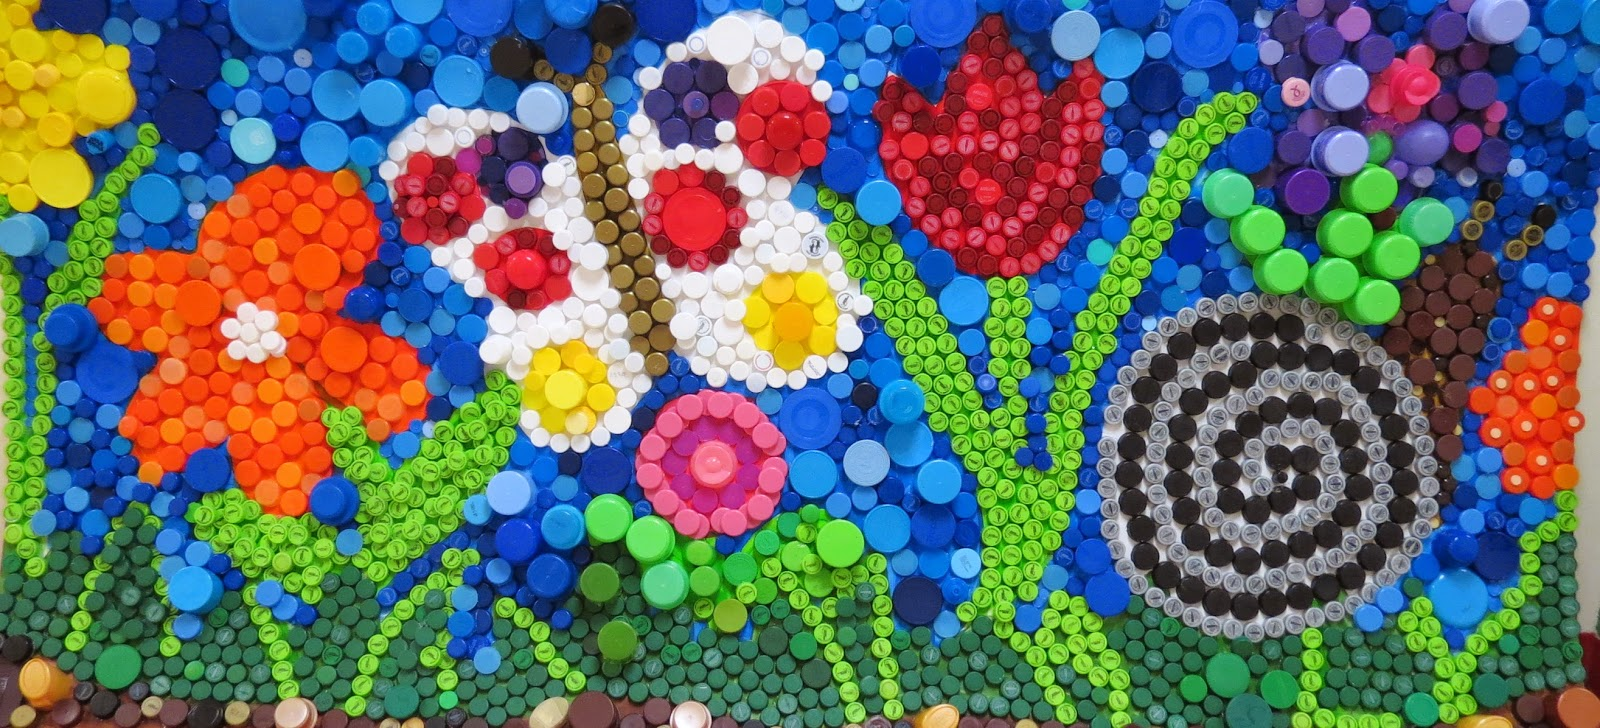 AESGATE: Recycled Bottle Cap Art